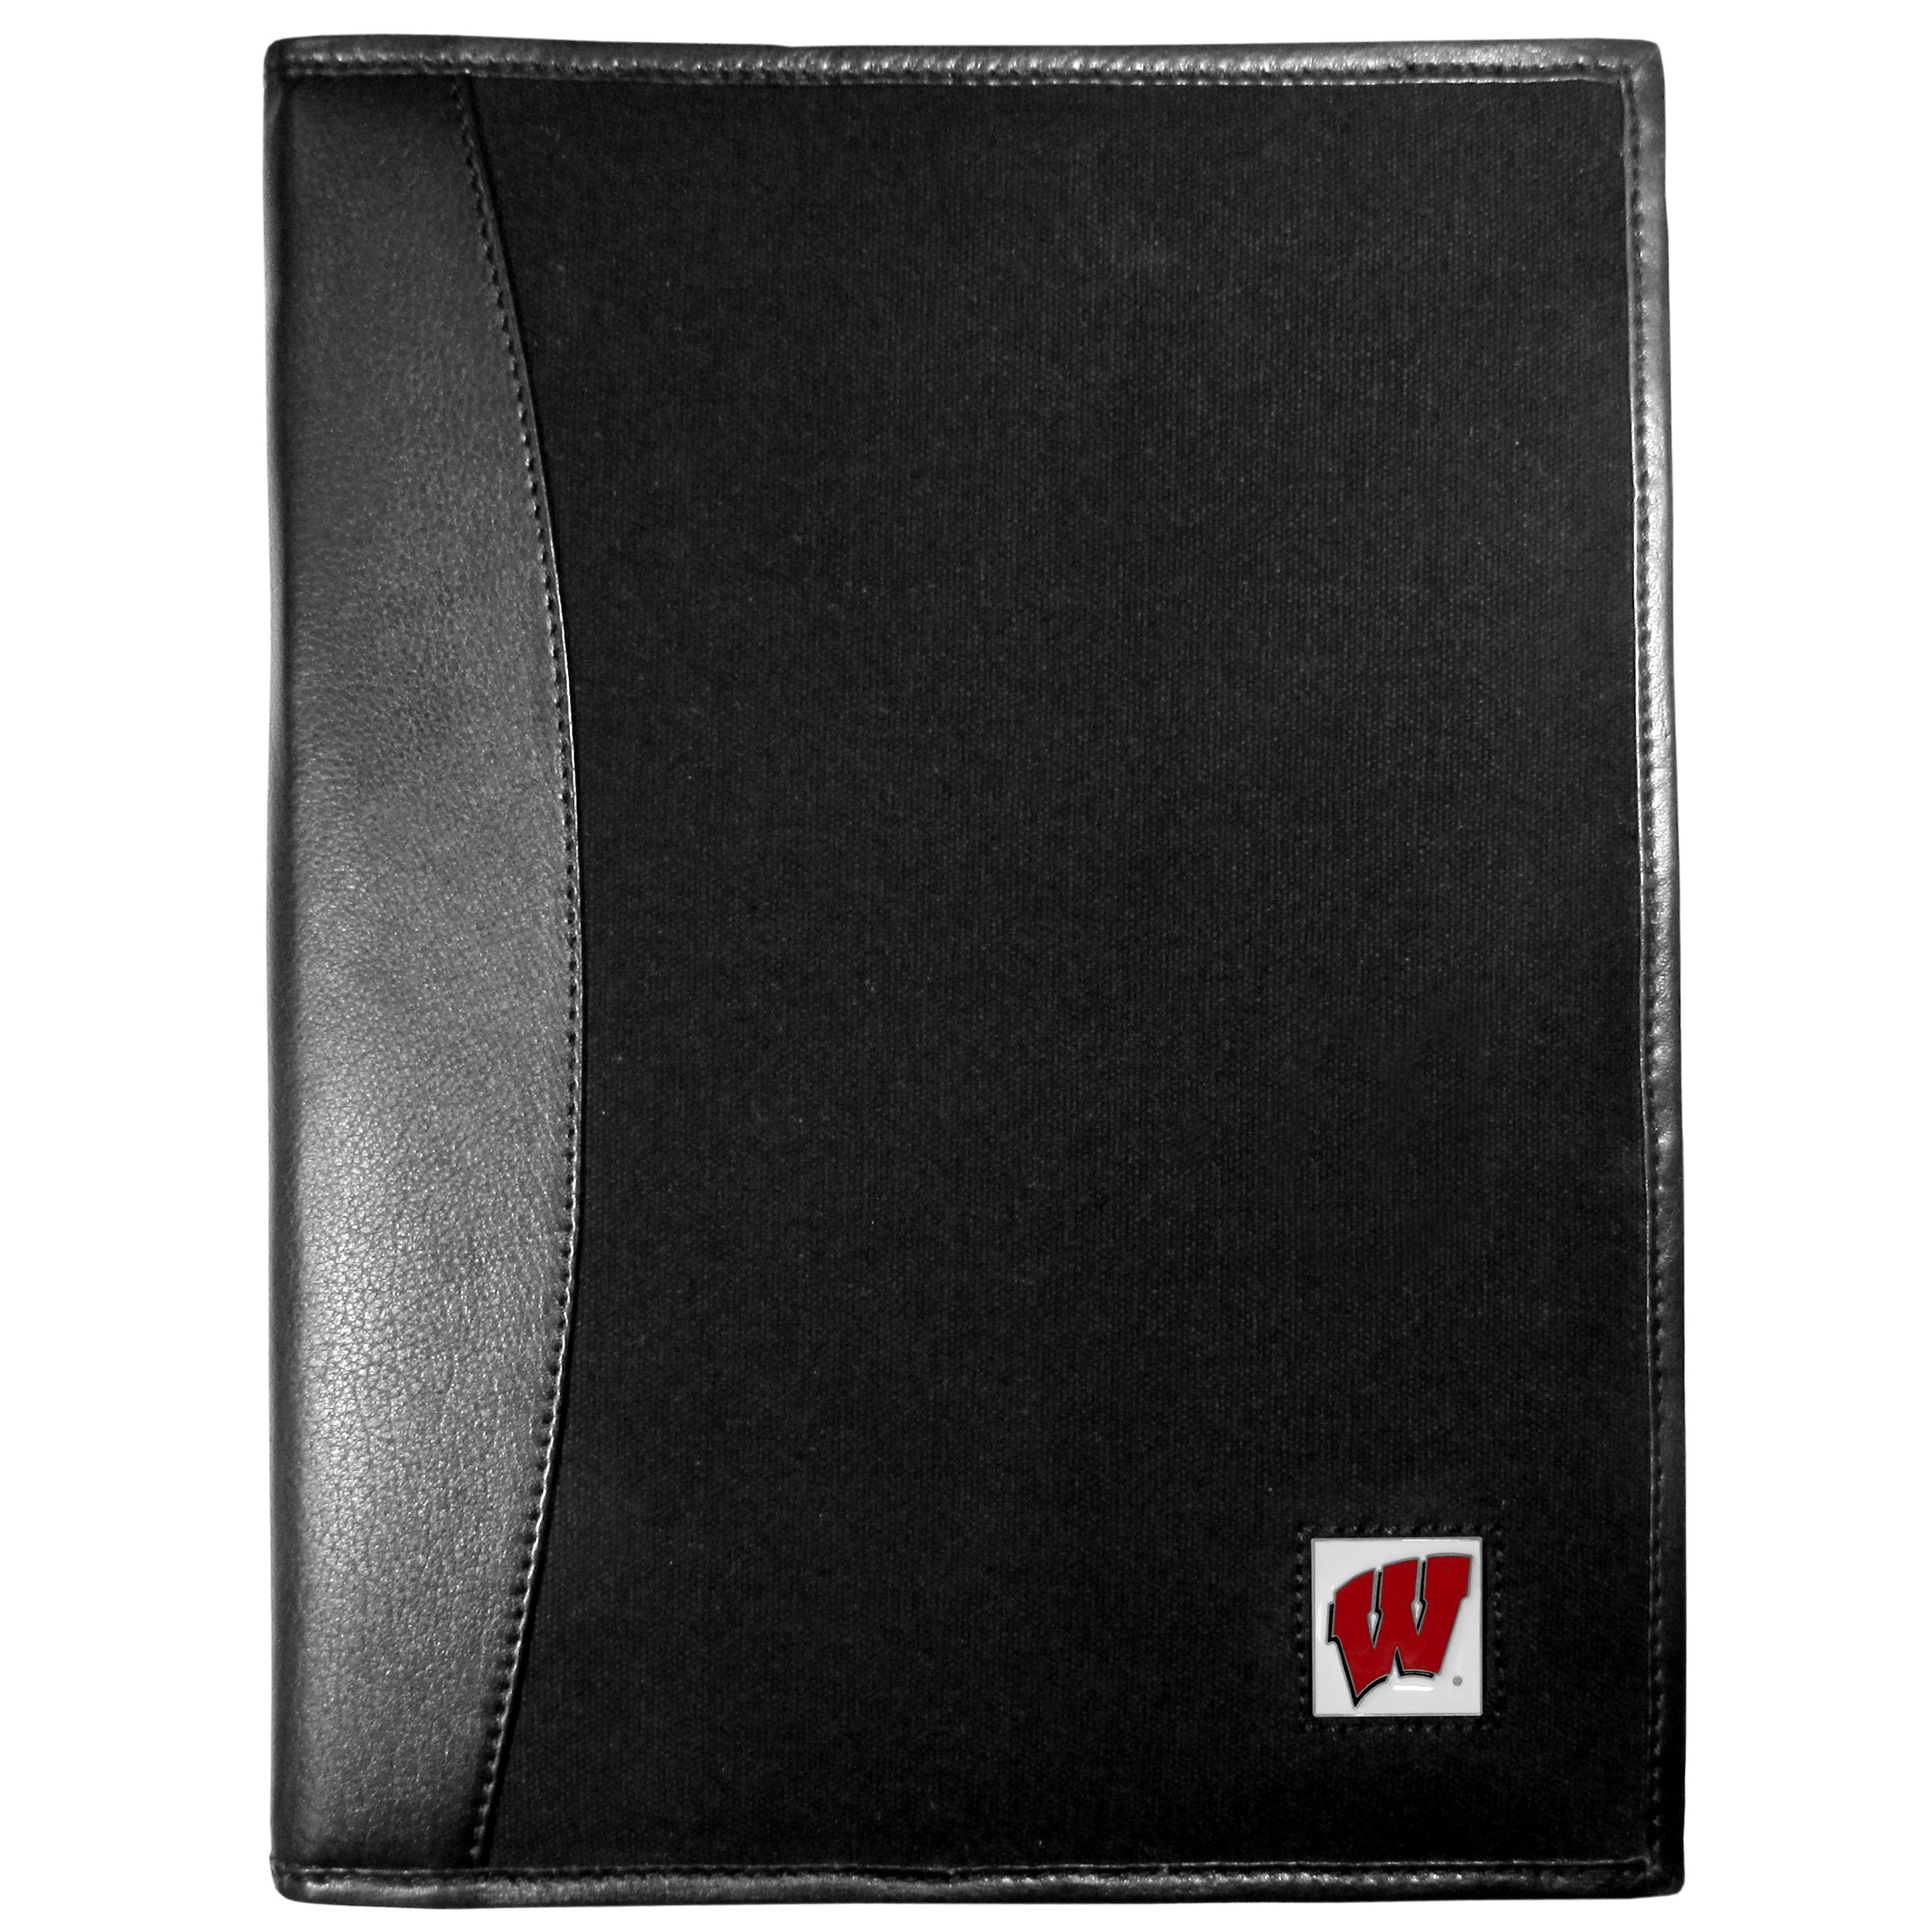 Wisconsin Badgers Leather and Canvas Padfolio - Our leather and canvas padfolio perfectly blends form and function. The attractive portfolio is bound in fine grain leather with an attractive canvas finish and the interior is a soft nylon. This high quality business accessory also features a fully cast metal Wisconsin Badgers emblem that is subtly set in the corner of the organizer. It is packed with features like 6 card slots for badges, business cards, hotel keys or credit cards and ID with a large pocket for loose papers and a writing tablet slot making it a must-have for the professional on the go.